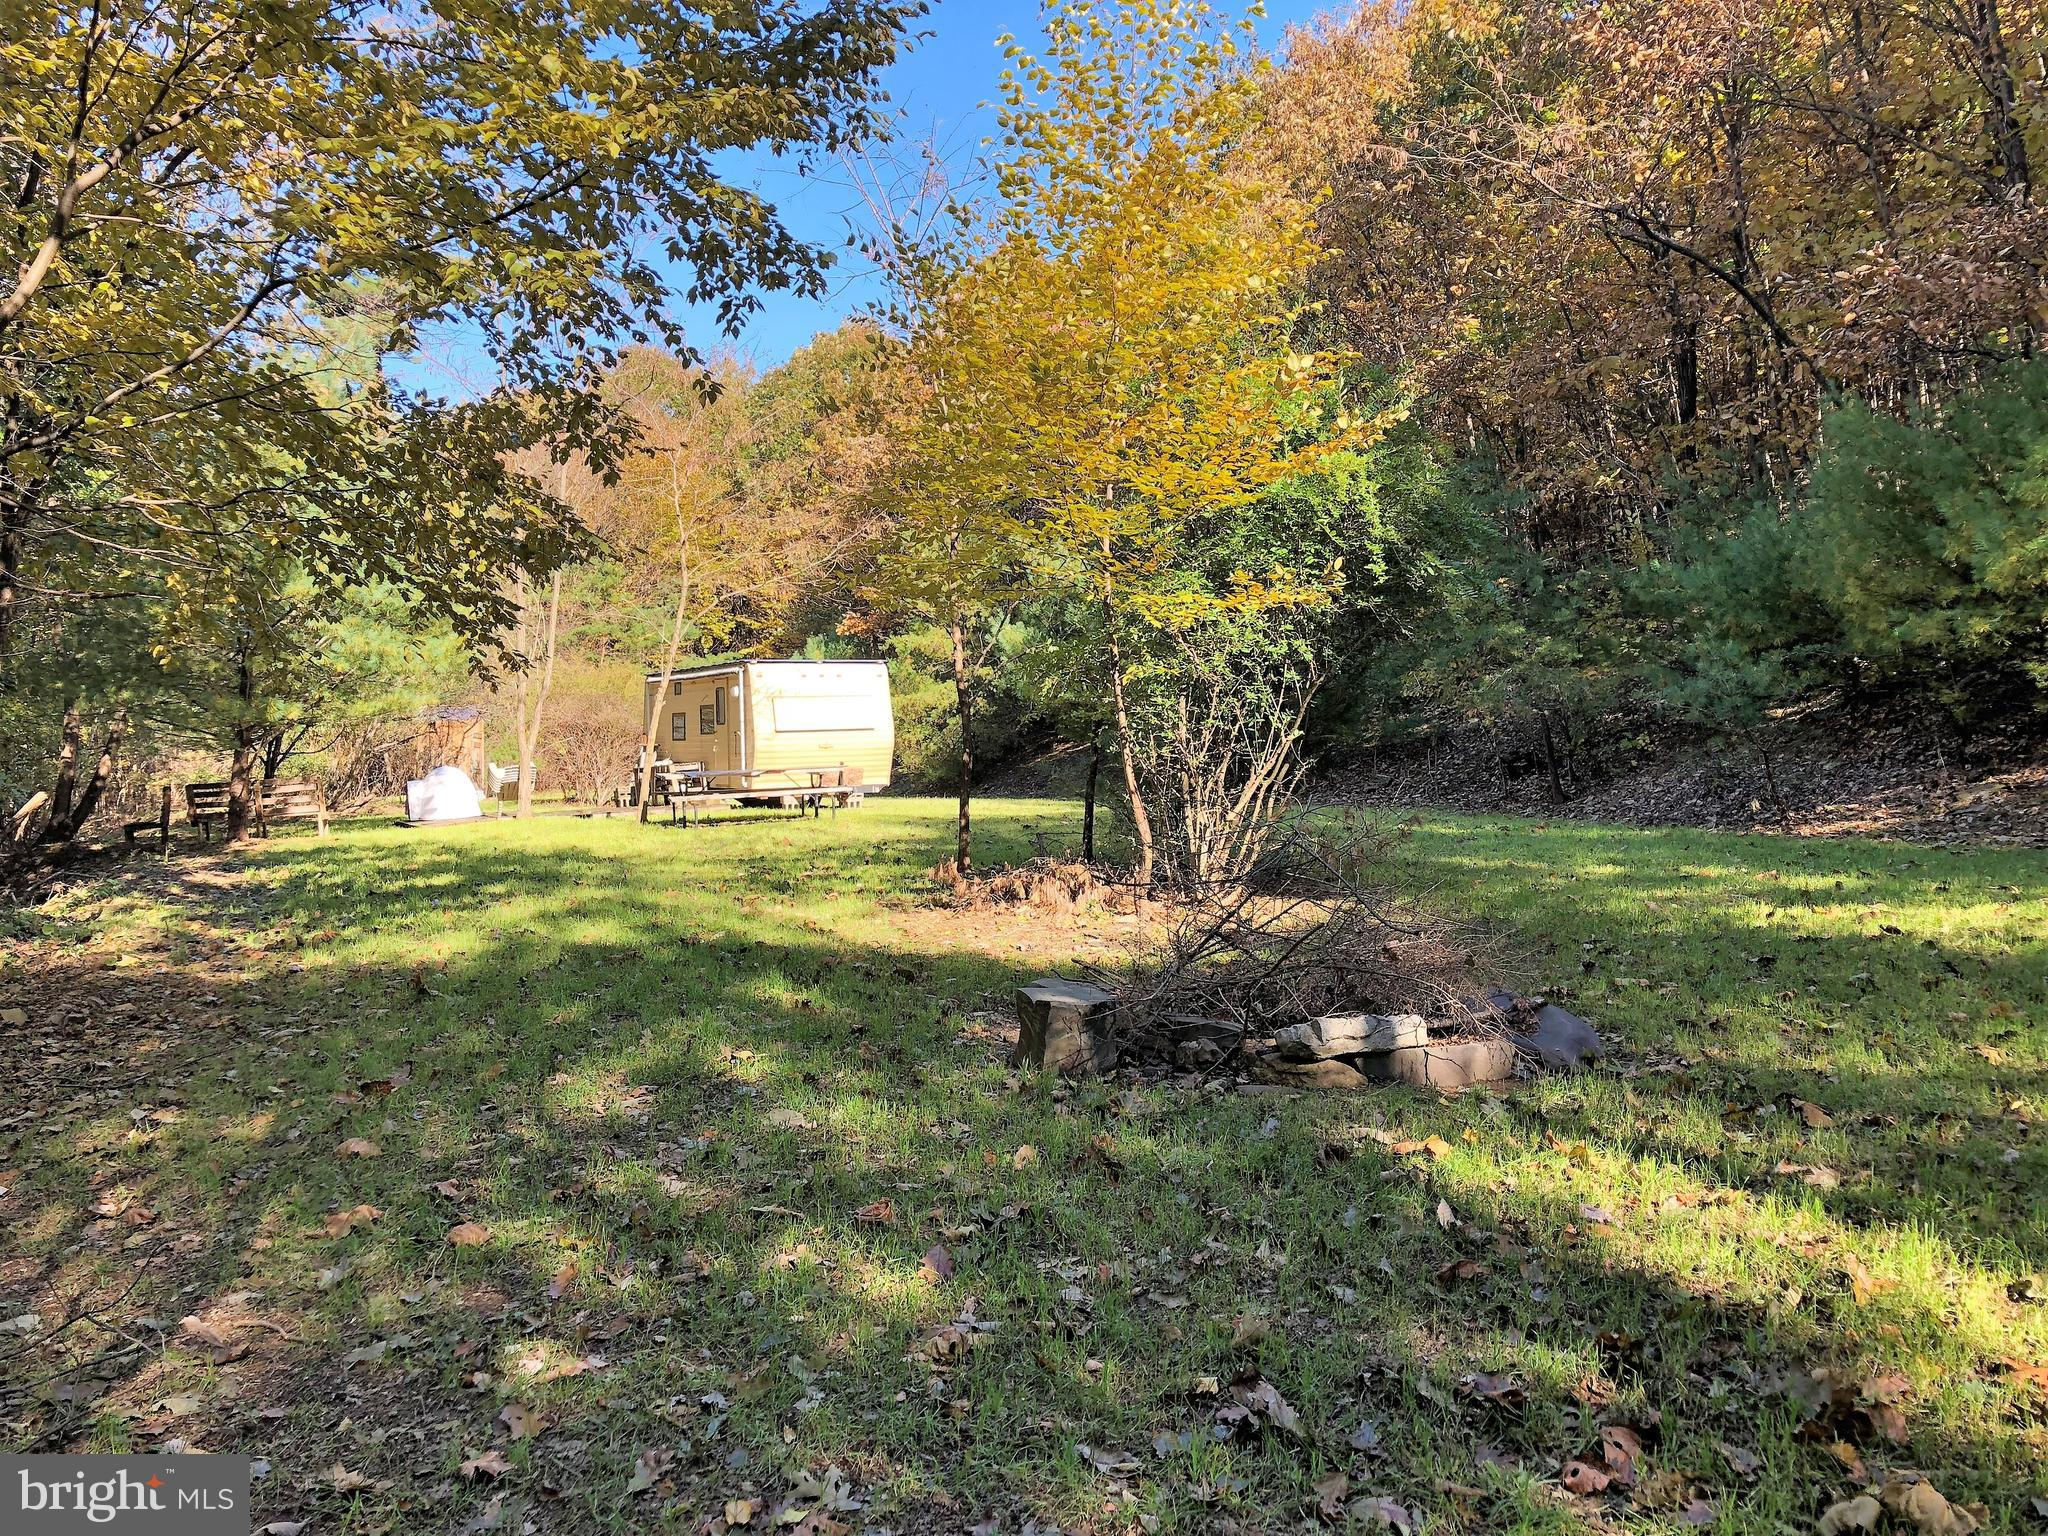 0 CLEAR RIDGE ROAD, EVERETT, PA 15537